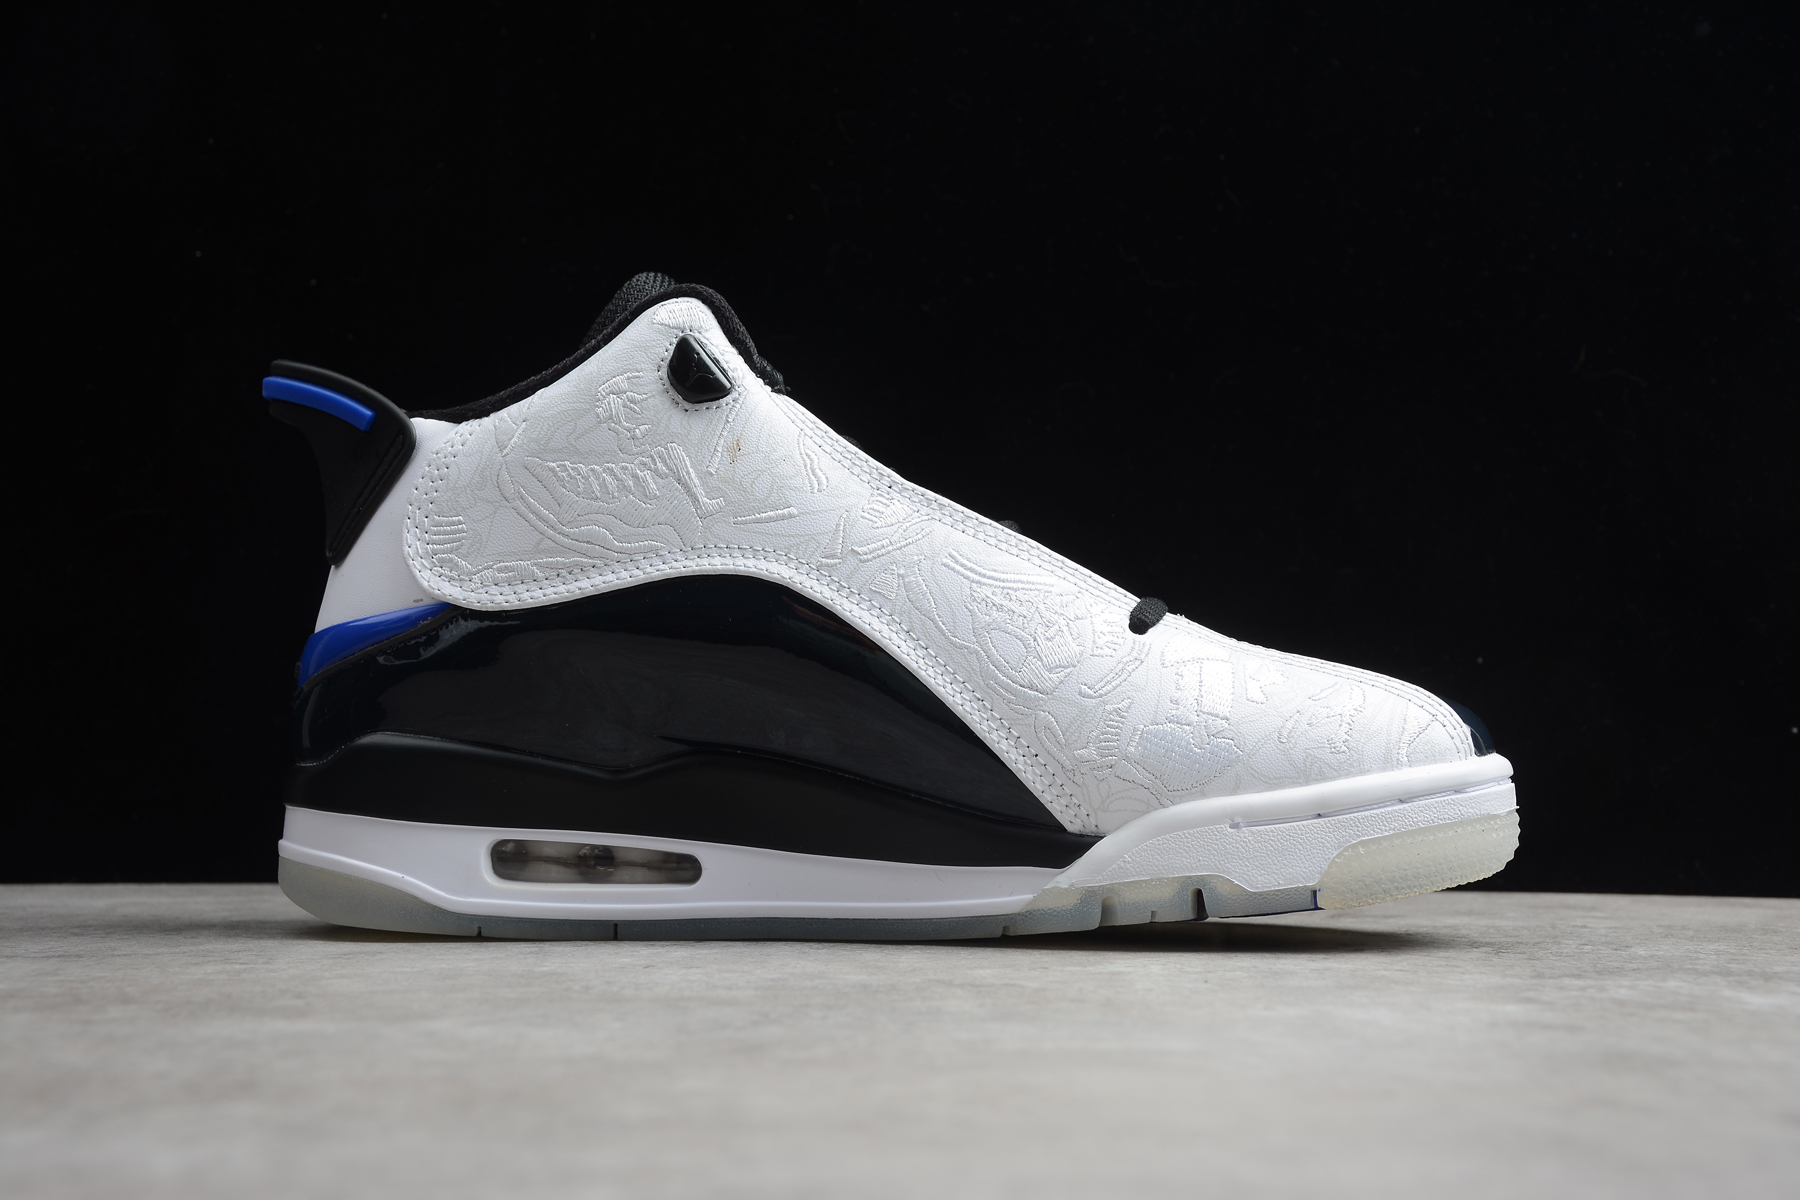 2020 Jordan DUB Zero White Black Blue Shoes